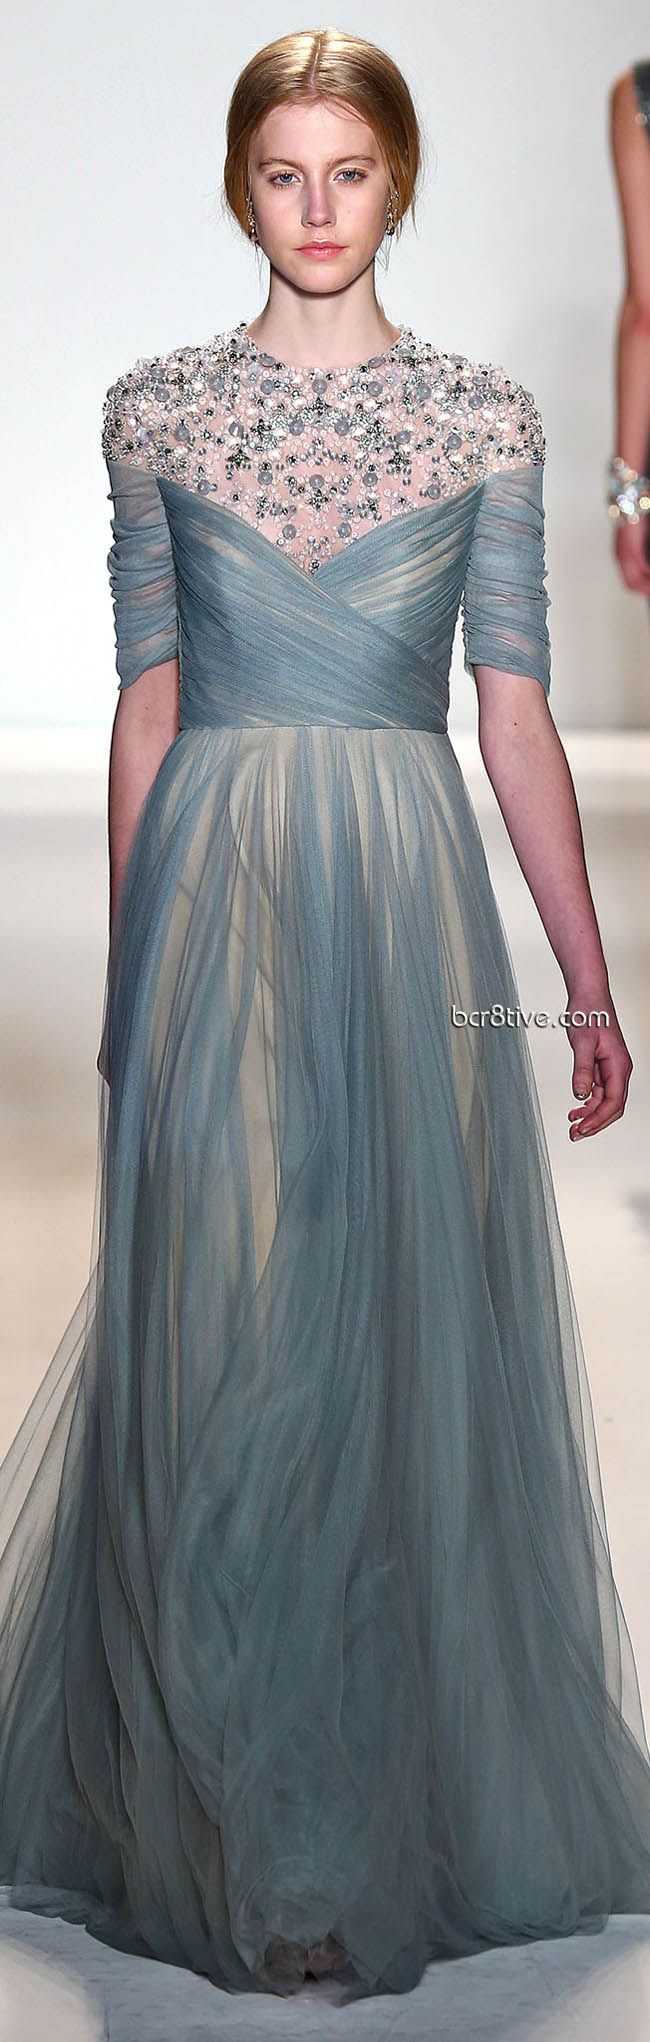 Jenny Packham Fall 2013 Ready to Wear Collection at New York Fashion Week.